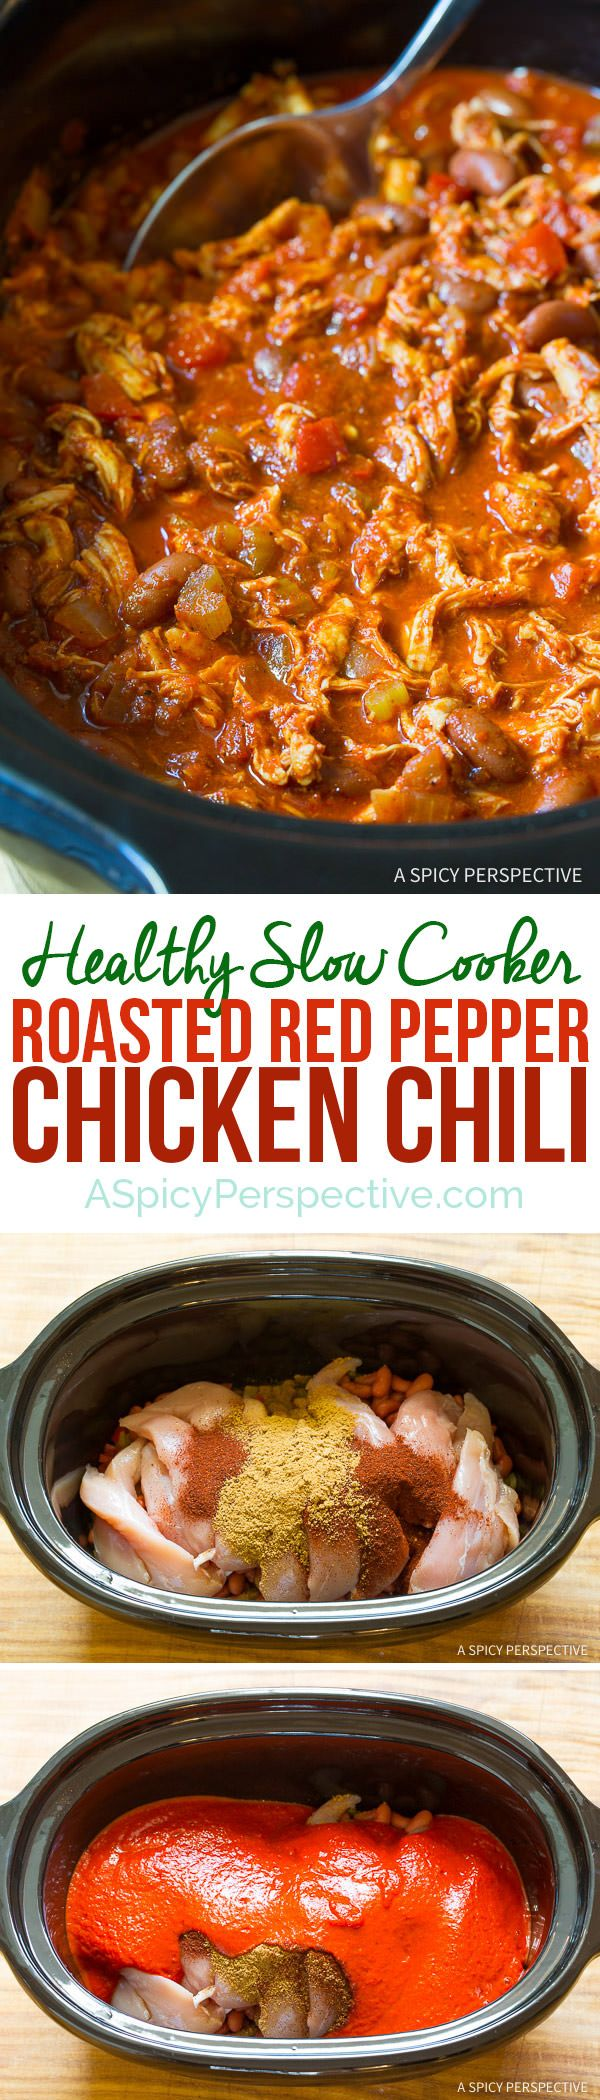 Healthy Slow Cooker Roasted Red Pepper Chicken Chili Recipe (Gluten Free & Dairy Free) | ASpicyPerpective.com                                                                                                                                                     More